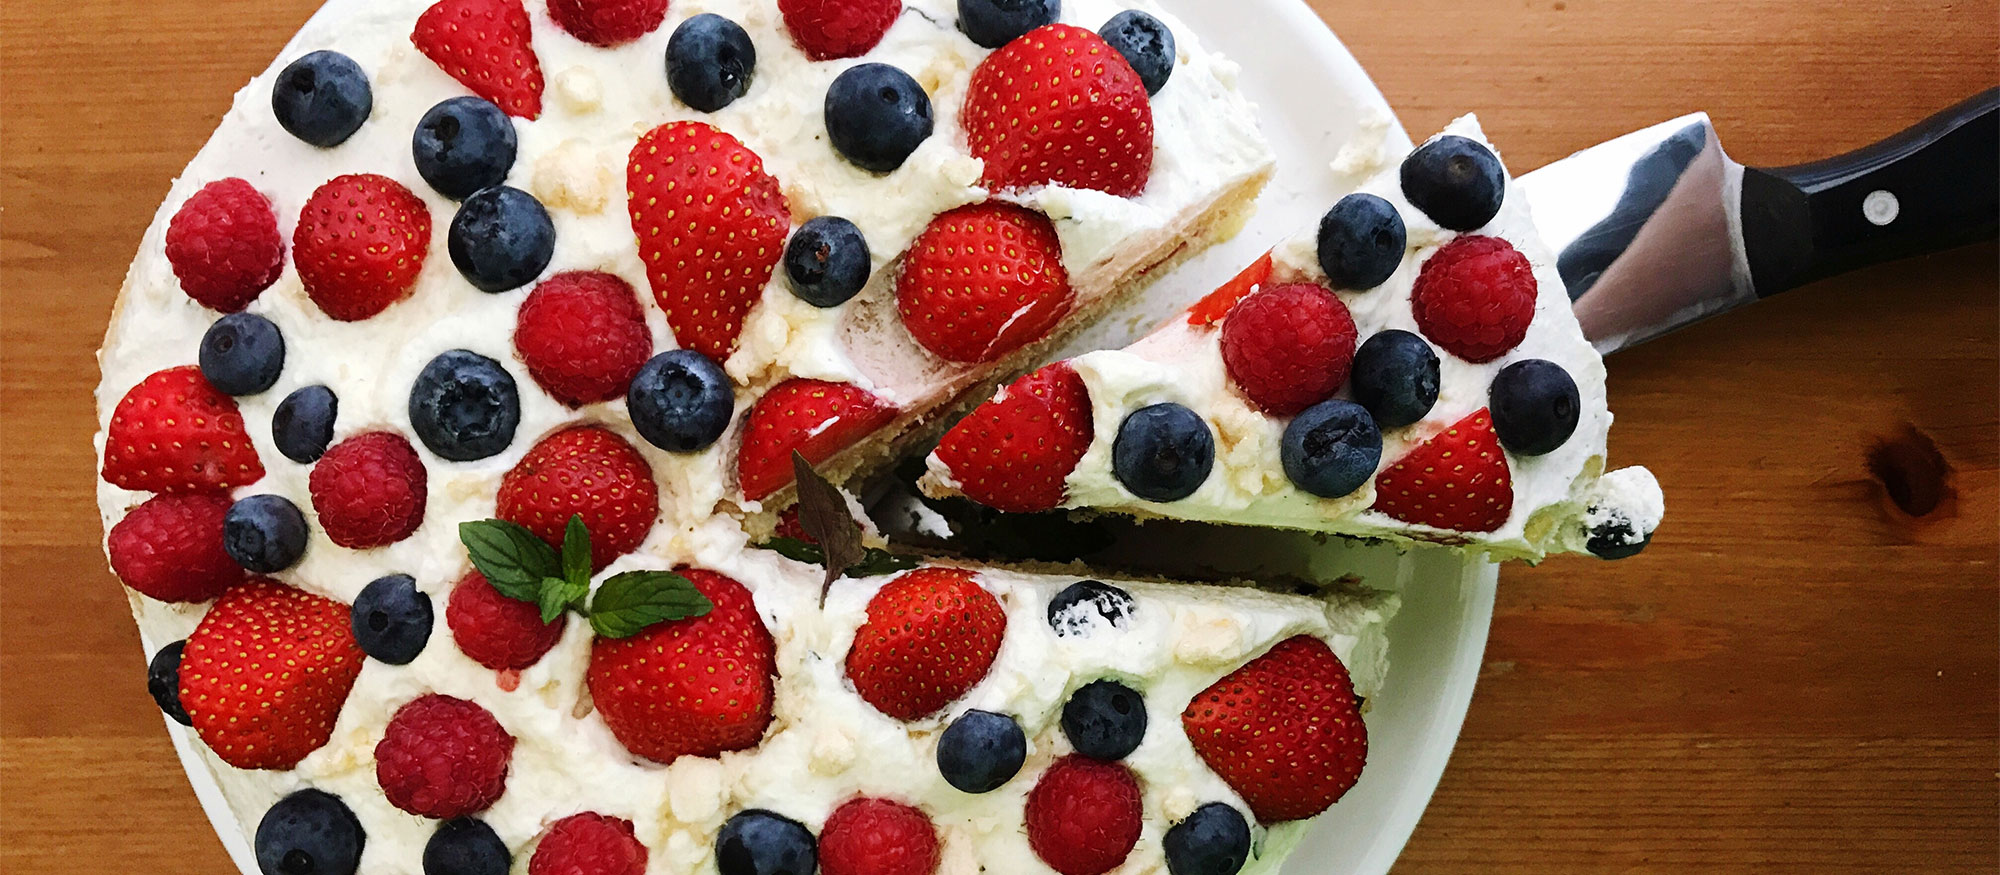 Cake with berries served on a table.